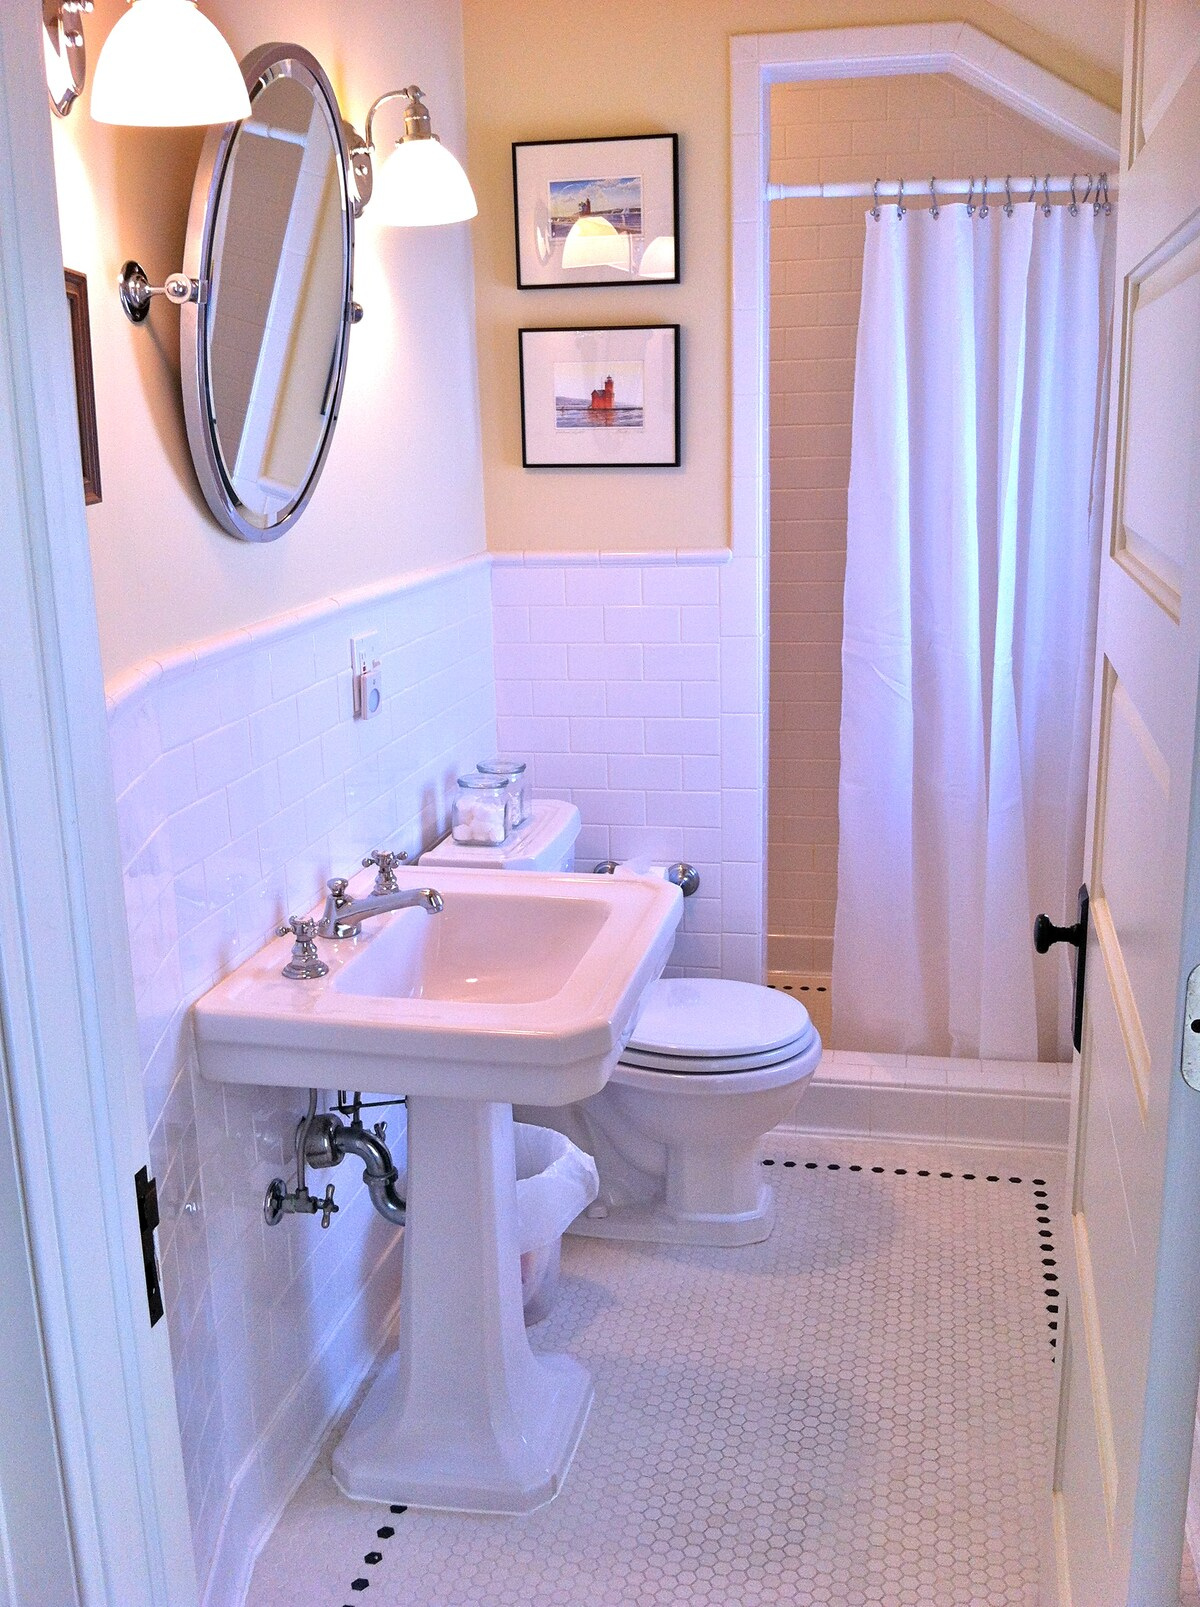 Full bath with tiled shower. Features in-floor heat.